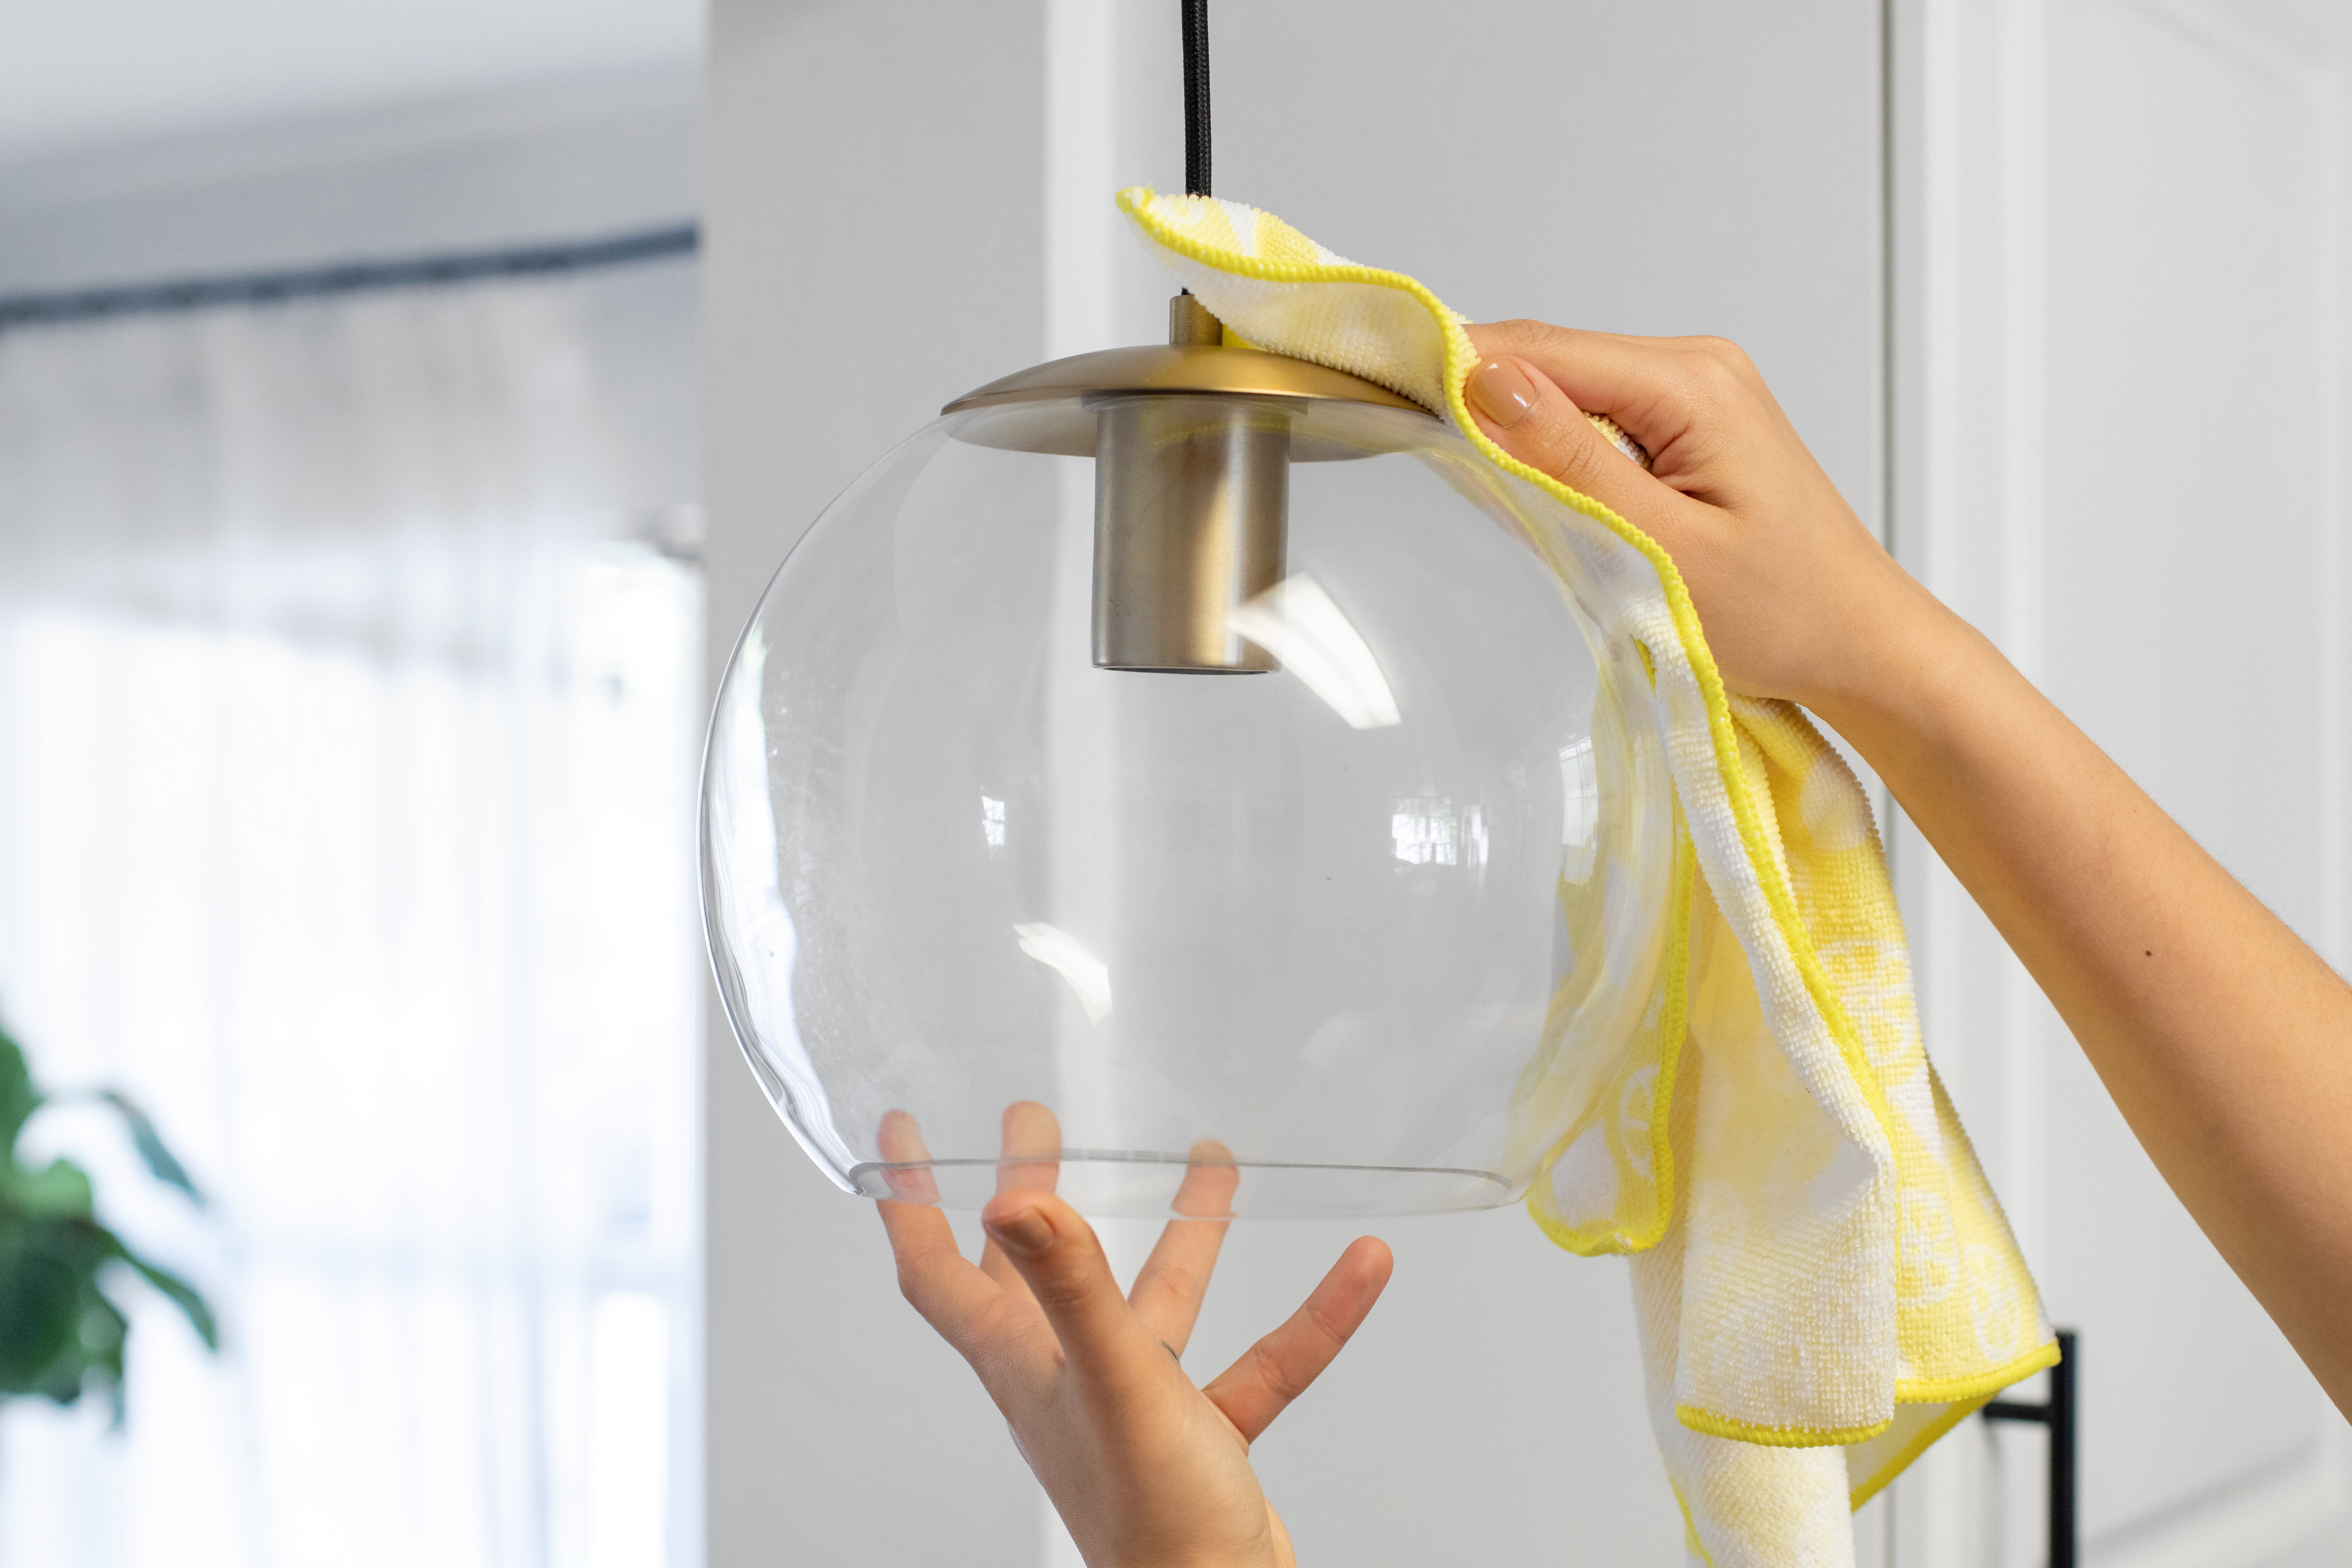 How To Clean Those Greasy Glass Shades on Your Kitchen's Pendant Lights: gallery image 5